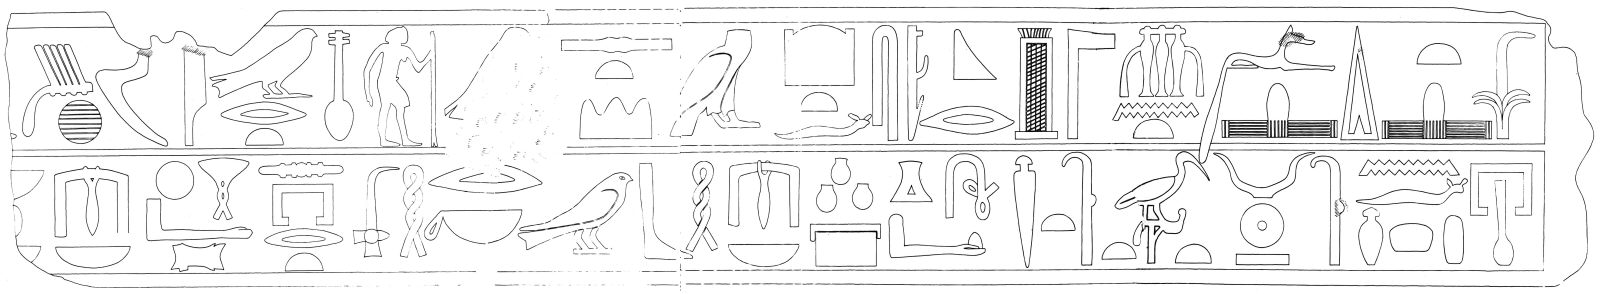 Drawings: G 2419: relief fragments (joining)